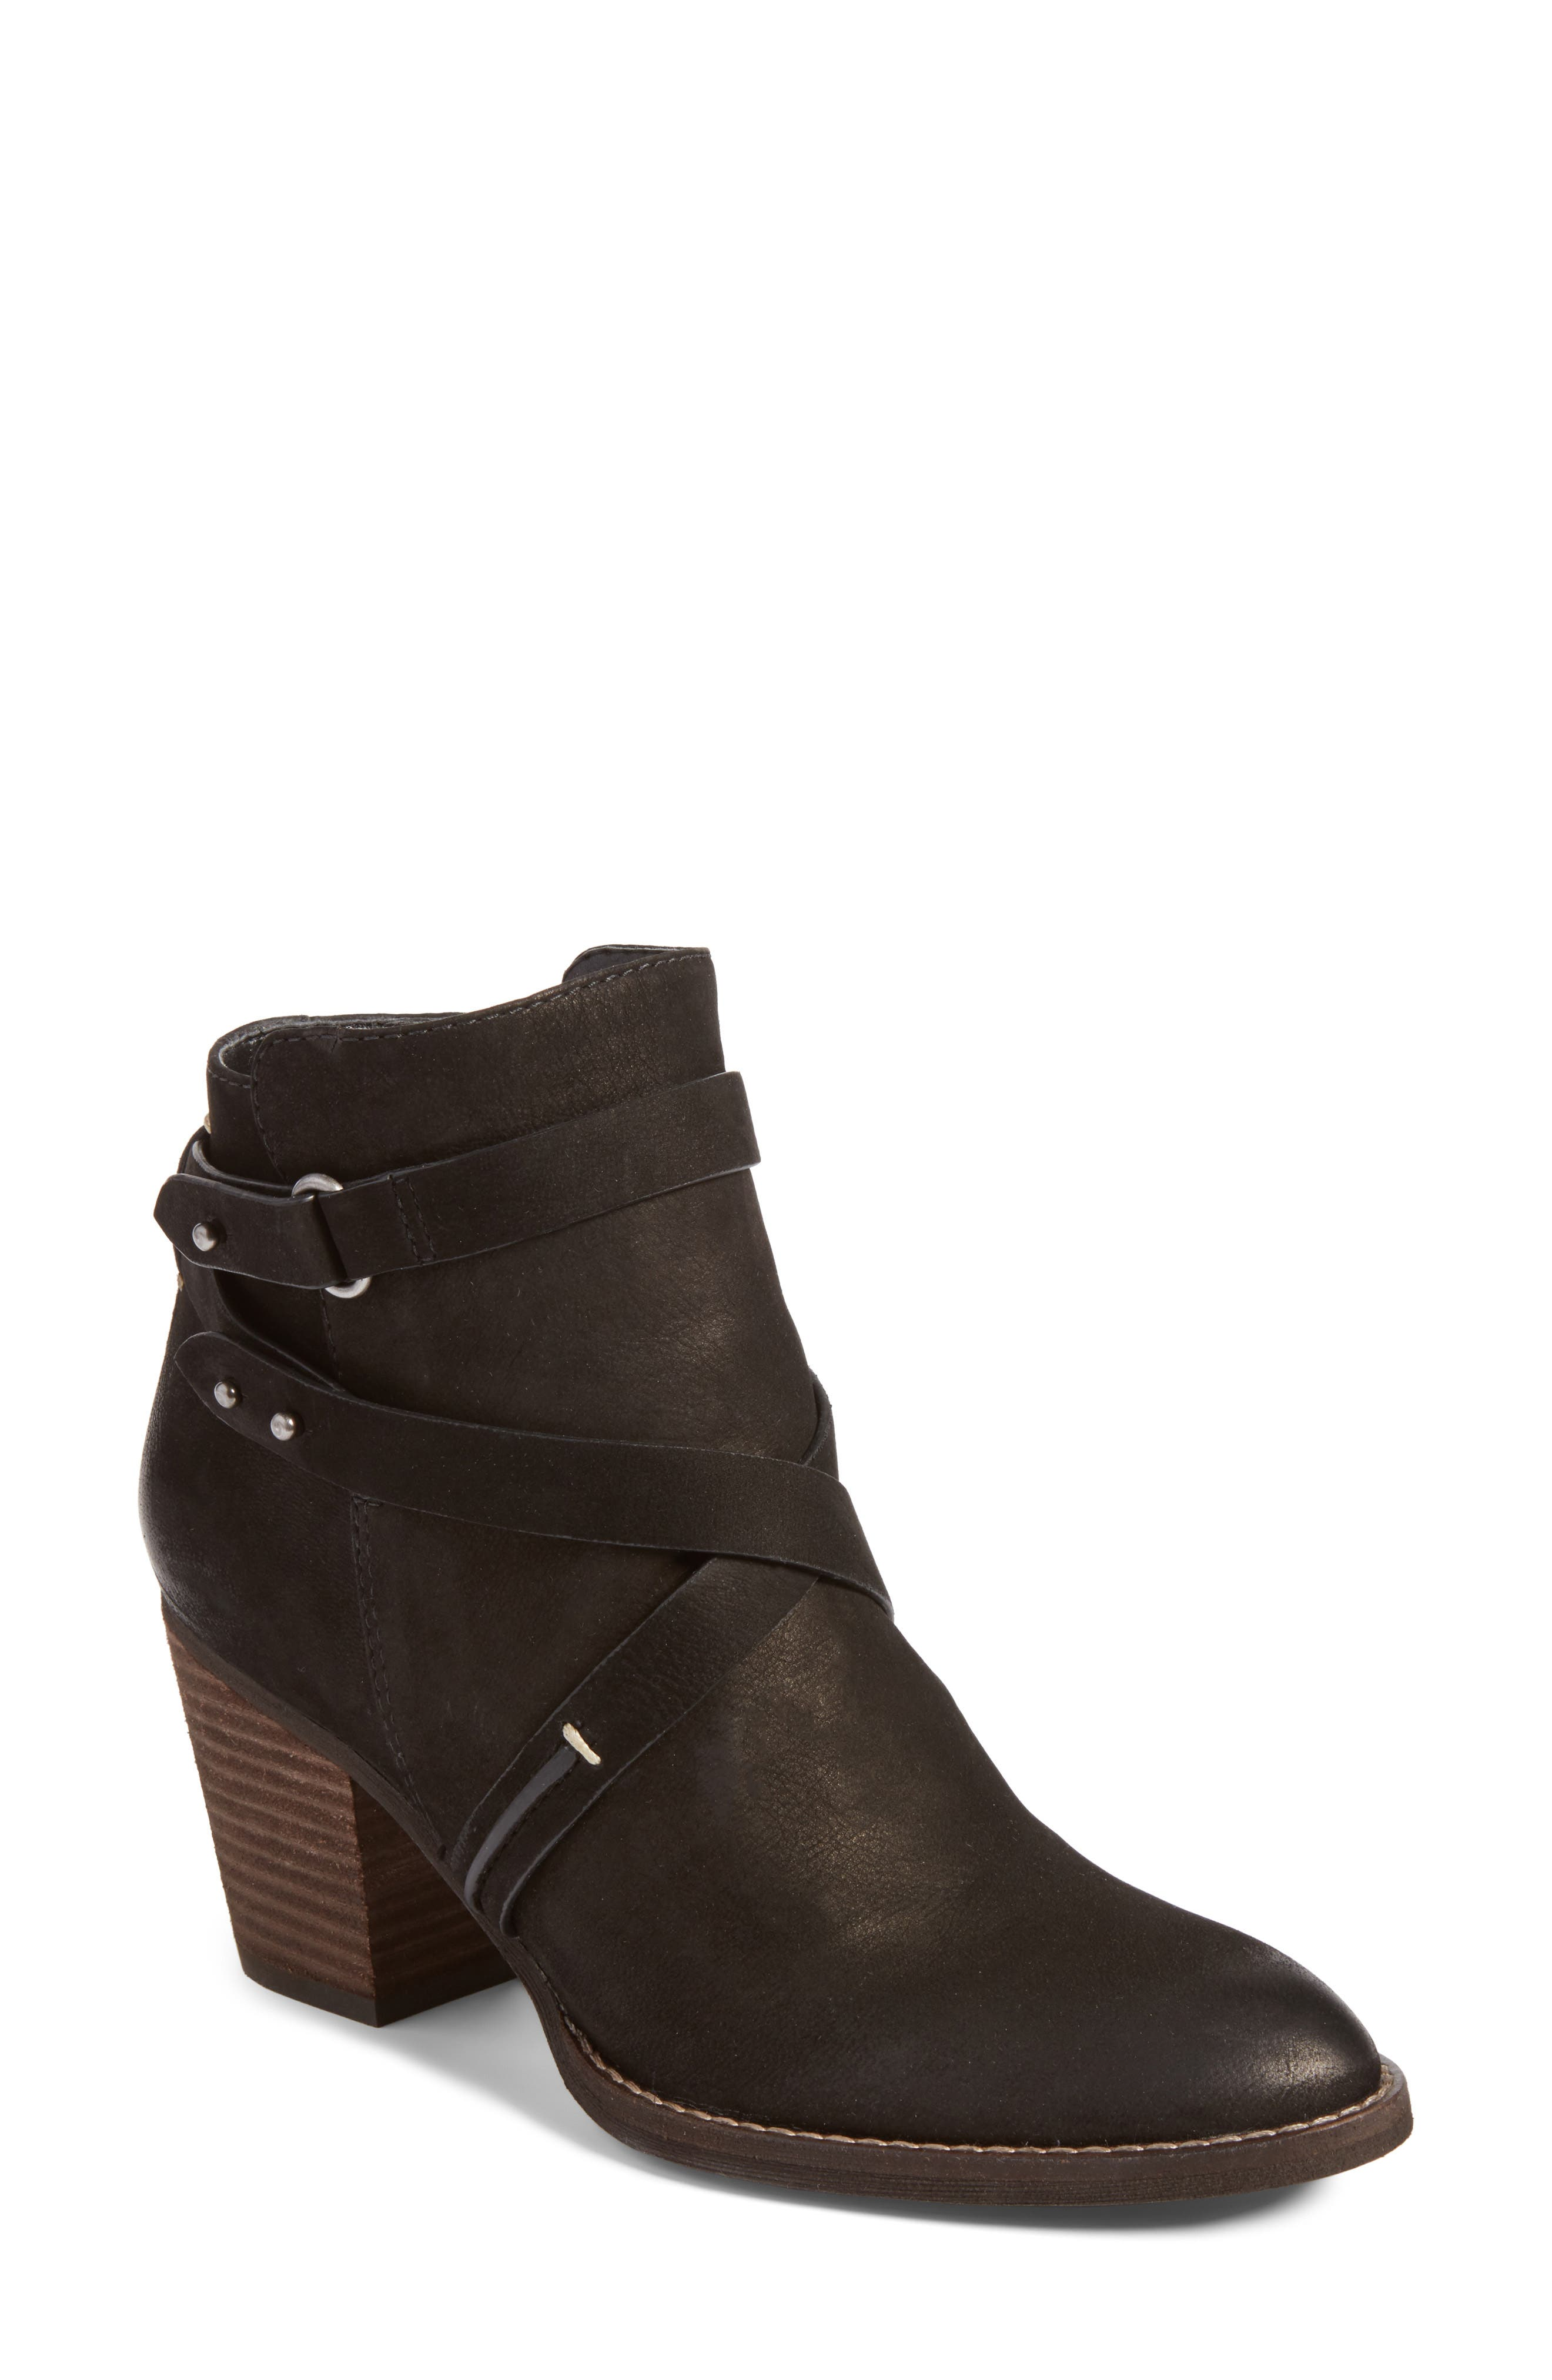 Merton Bootie,                         Main,                         color, 001